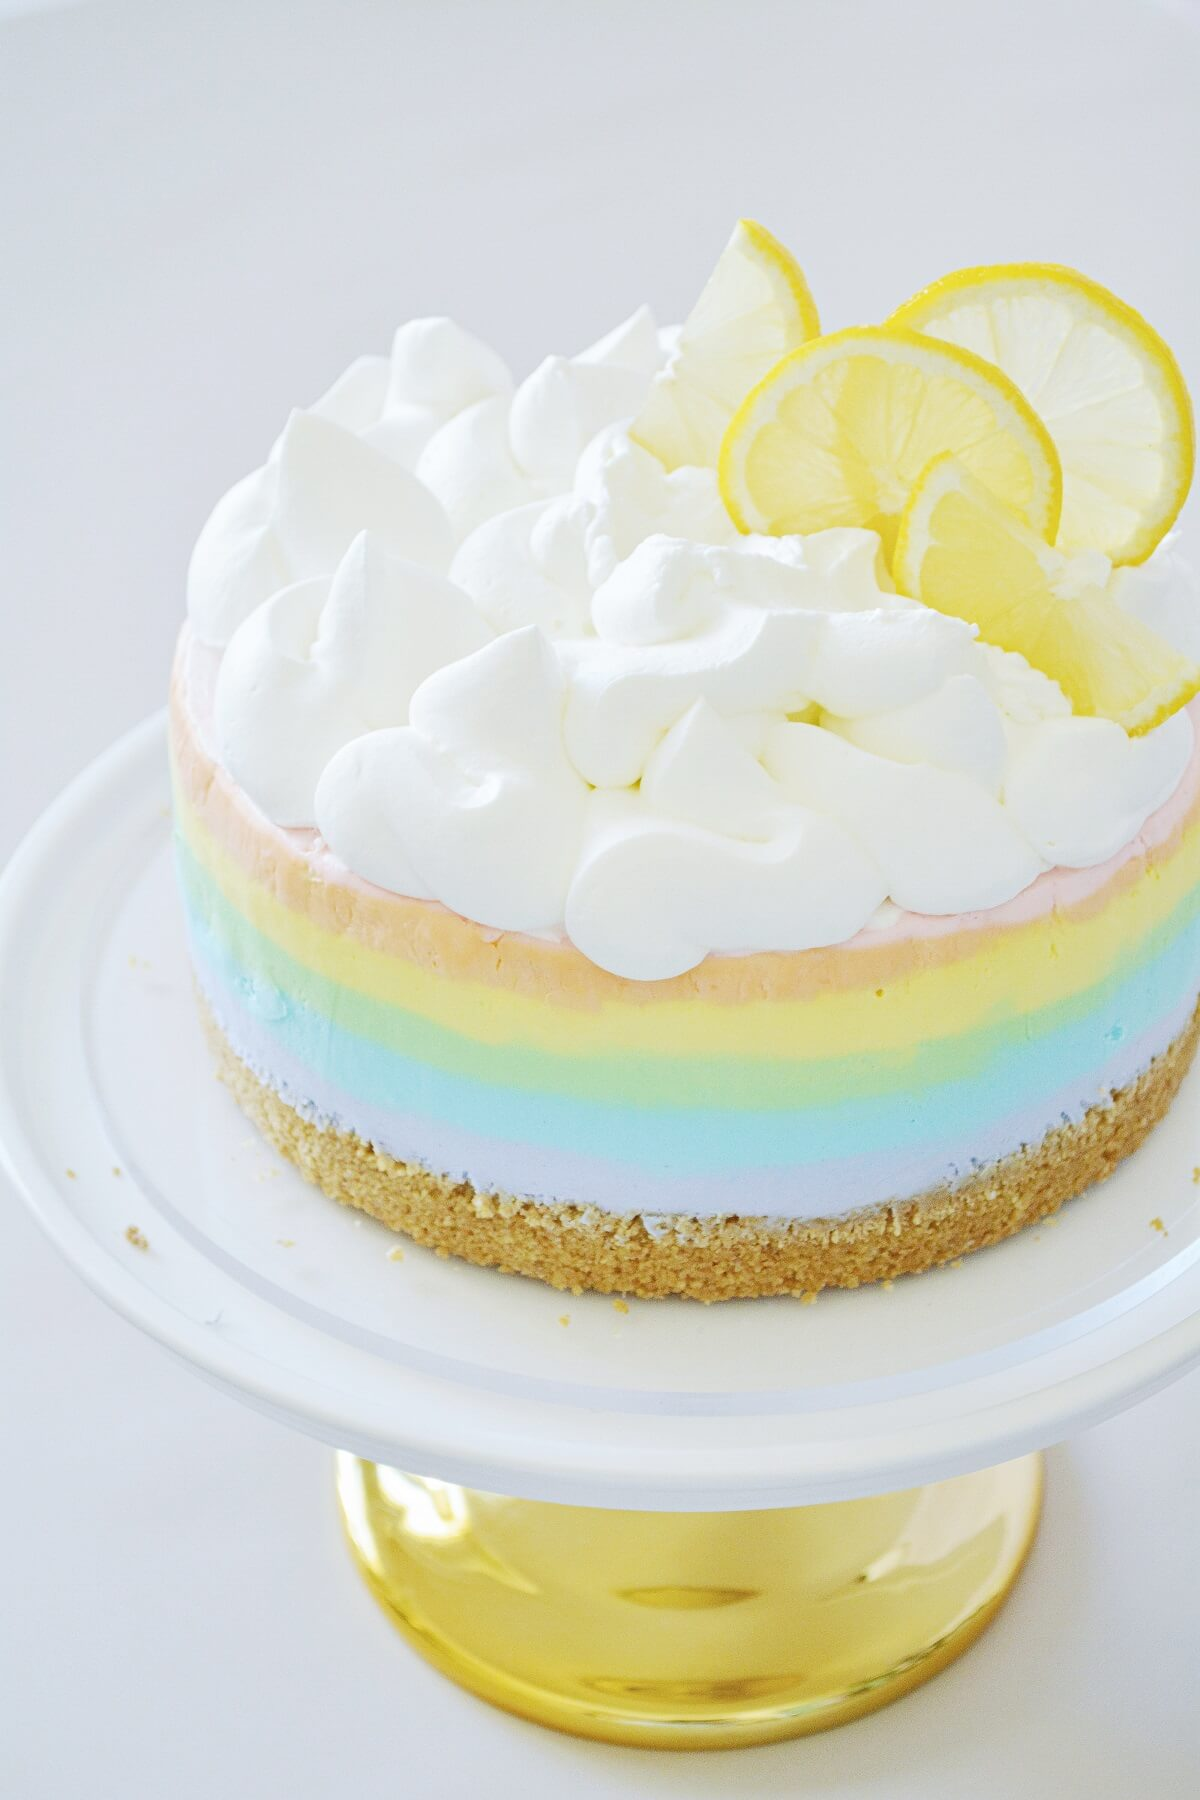 Rainbow cheesecake, topped with whipped cream and lemon slices.